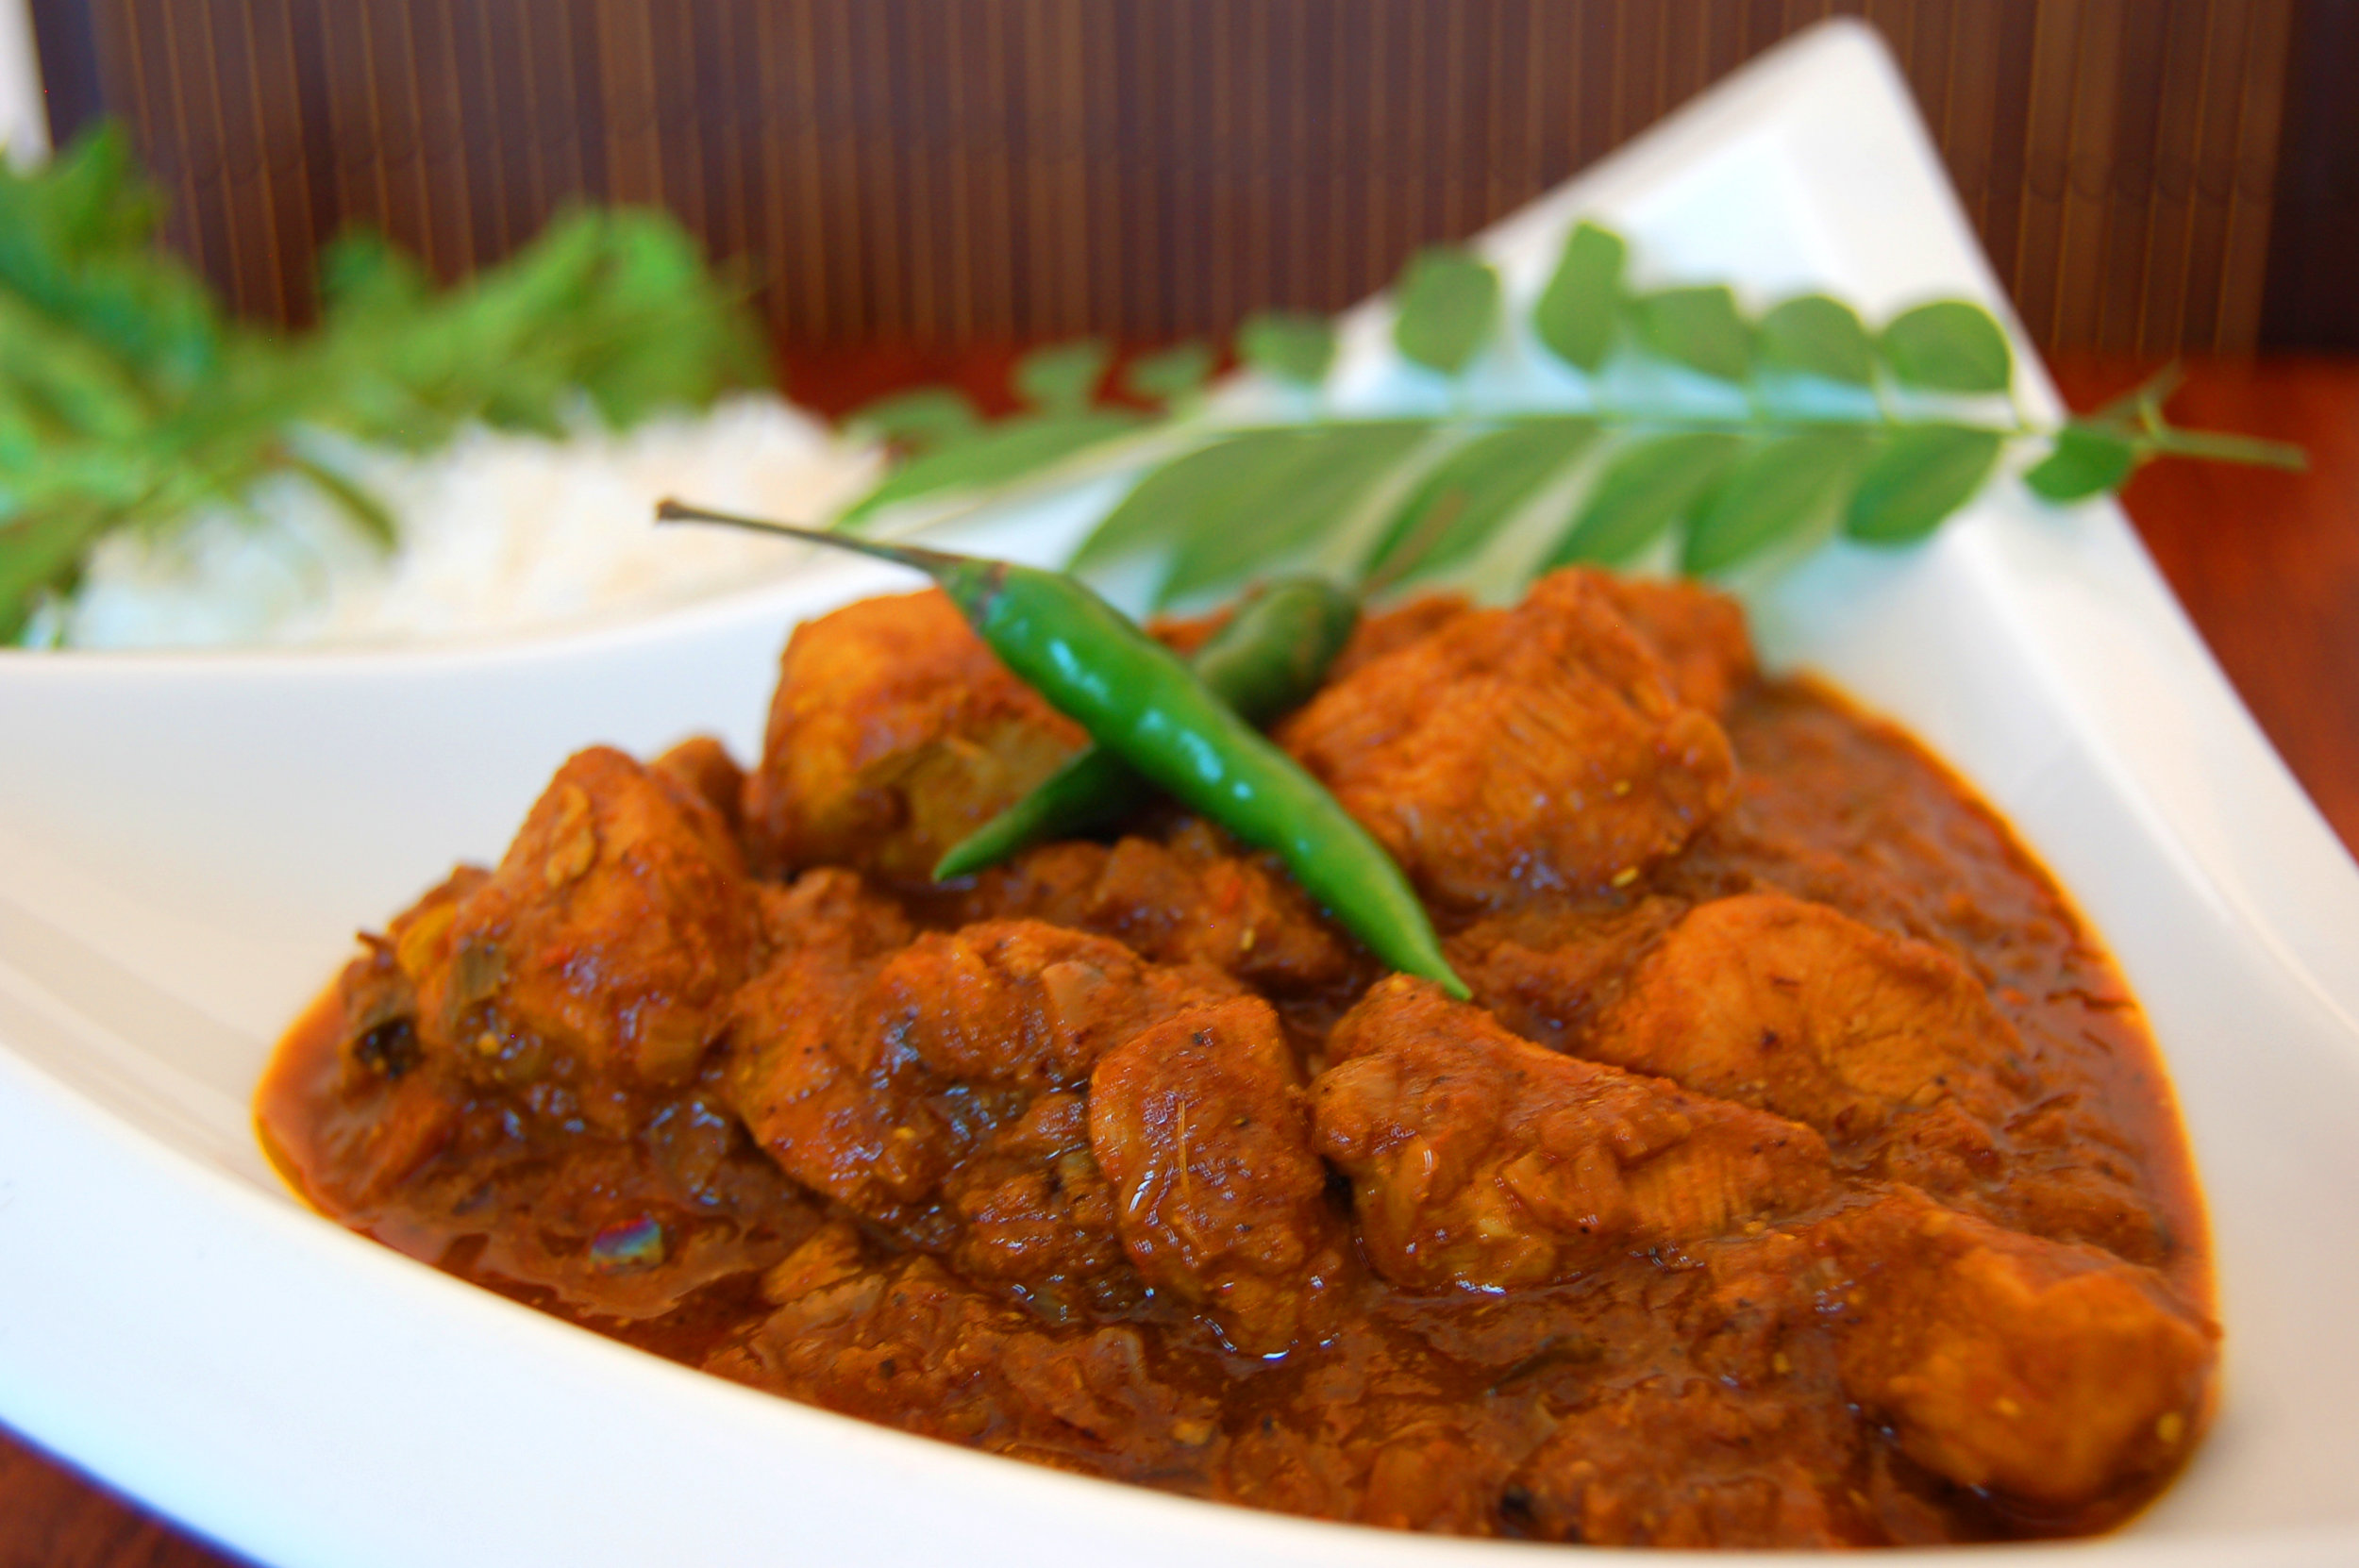 FIERY VINDALOO - {Made with Arvinda's Vindaloo Masala}For the Indian food lover that likes it hot, Vindaloo is the curry that hits the spot! Vindaloo's origins are from exotic Goa, known for its worldly collision of flavours and cooking traditions from India and Portugal. This hot, spicy, mildly sweet and sour curry is best suited with chicken or pork, however you may try it with paneer for a vegetarian option. Serve this mouth-watering curry with your favourite Indian flatbread and rice!